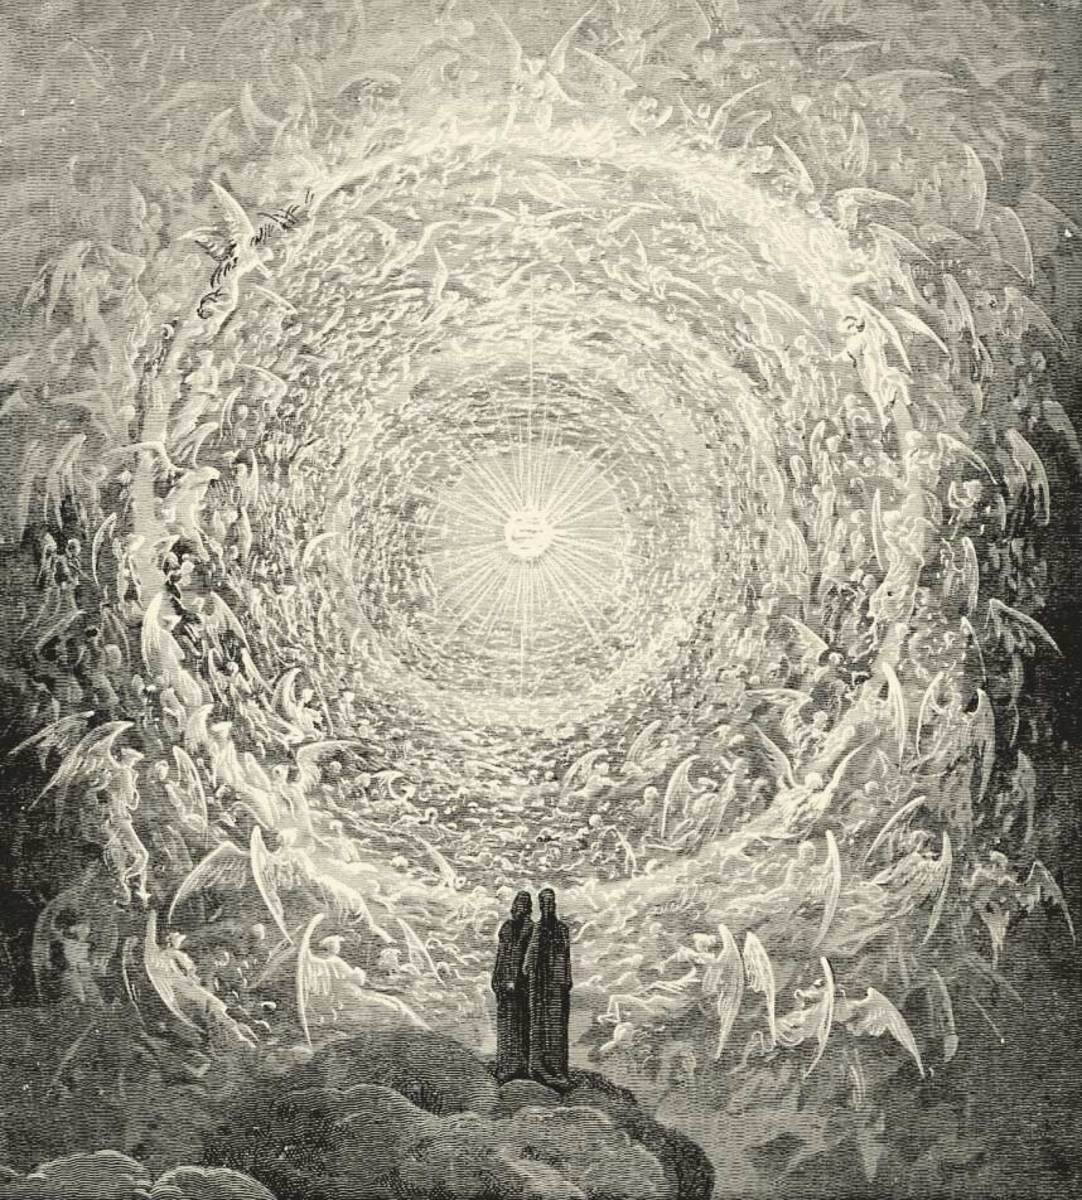 The vision of God in Dante's Paradiso, by Gustave Dore.